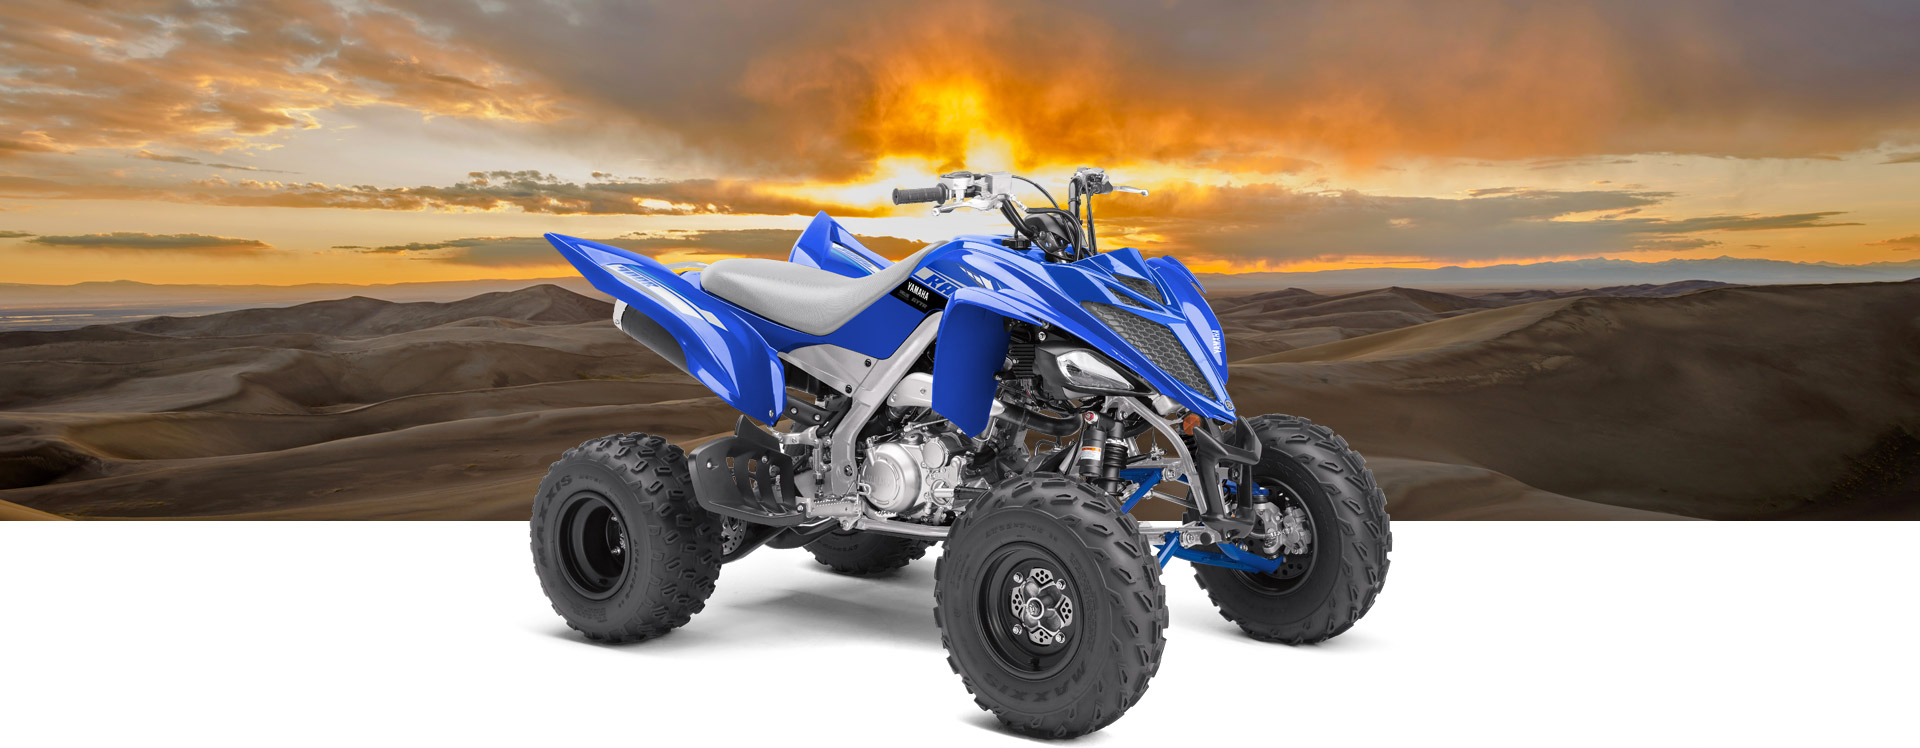 2020 Yamaha Raptor 700r Sport Atv Model Home